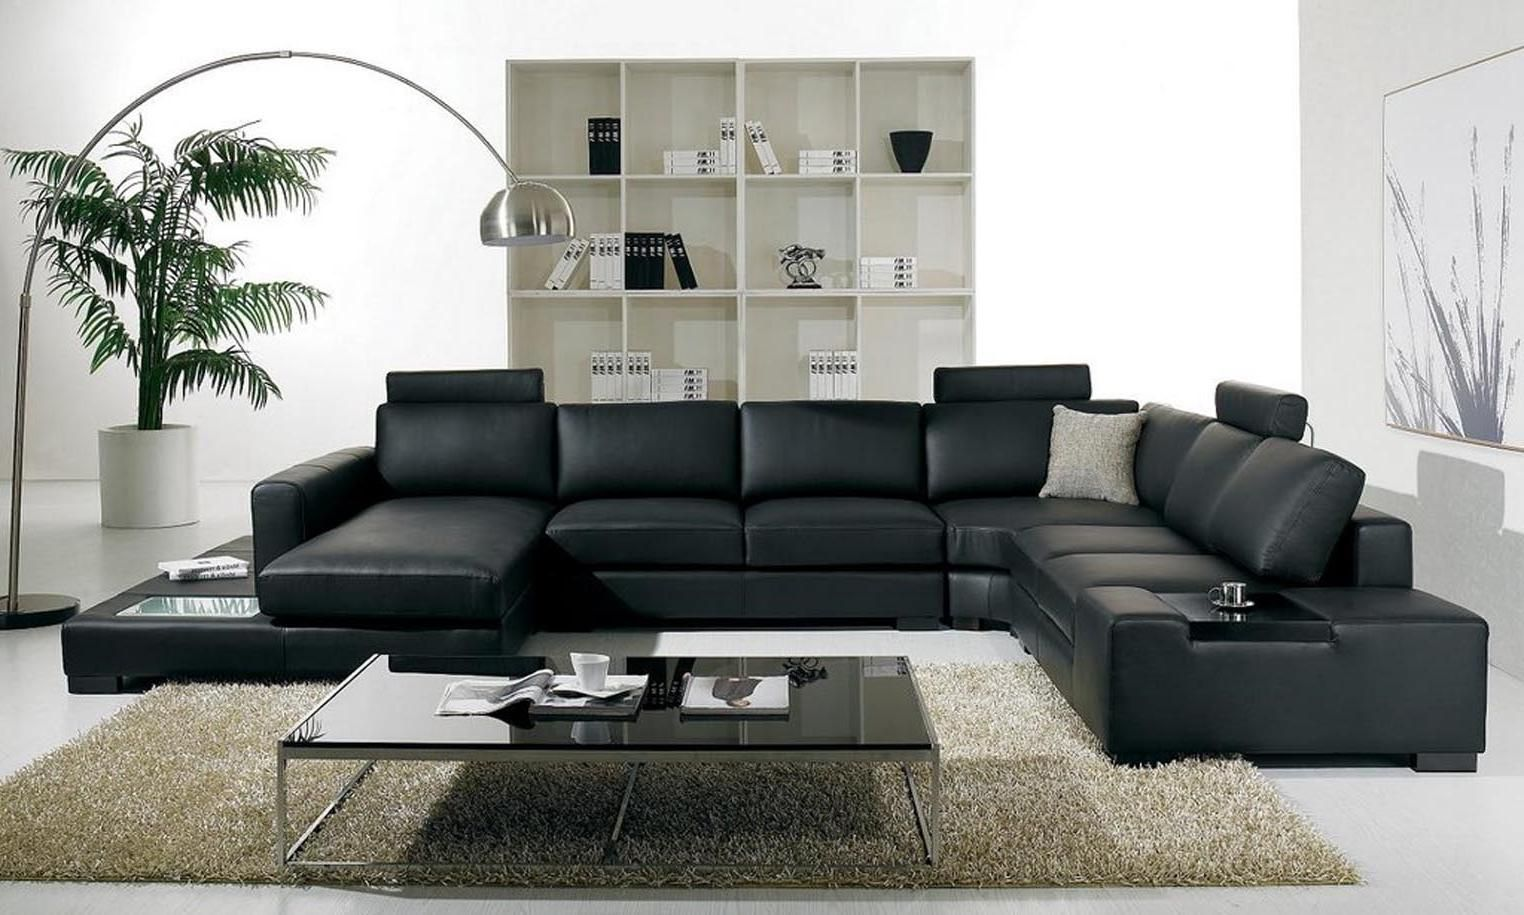 modern leather living room furniture ideas | Furry rugs, Leather ...